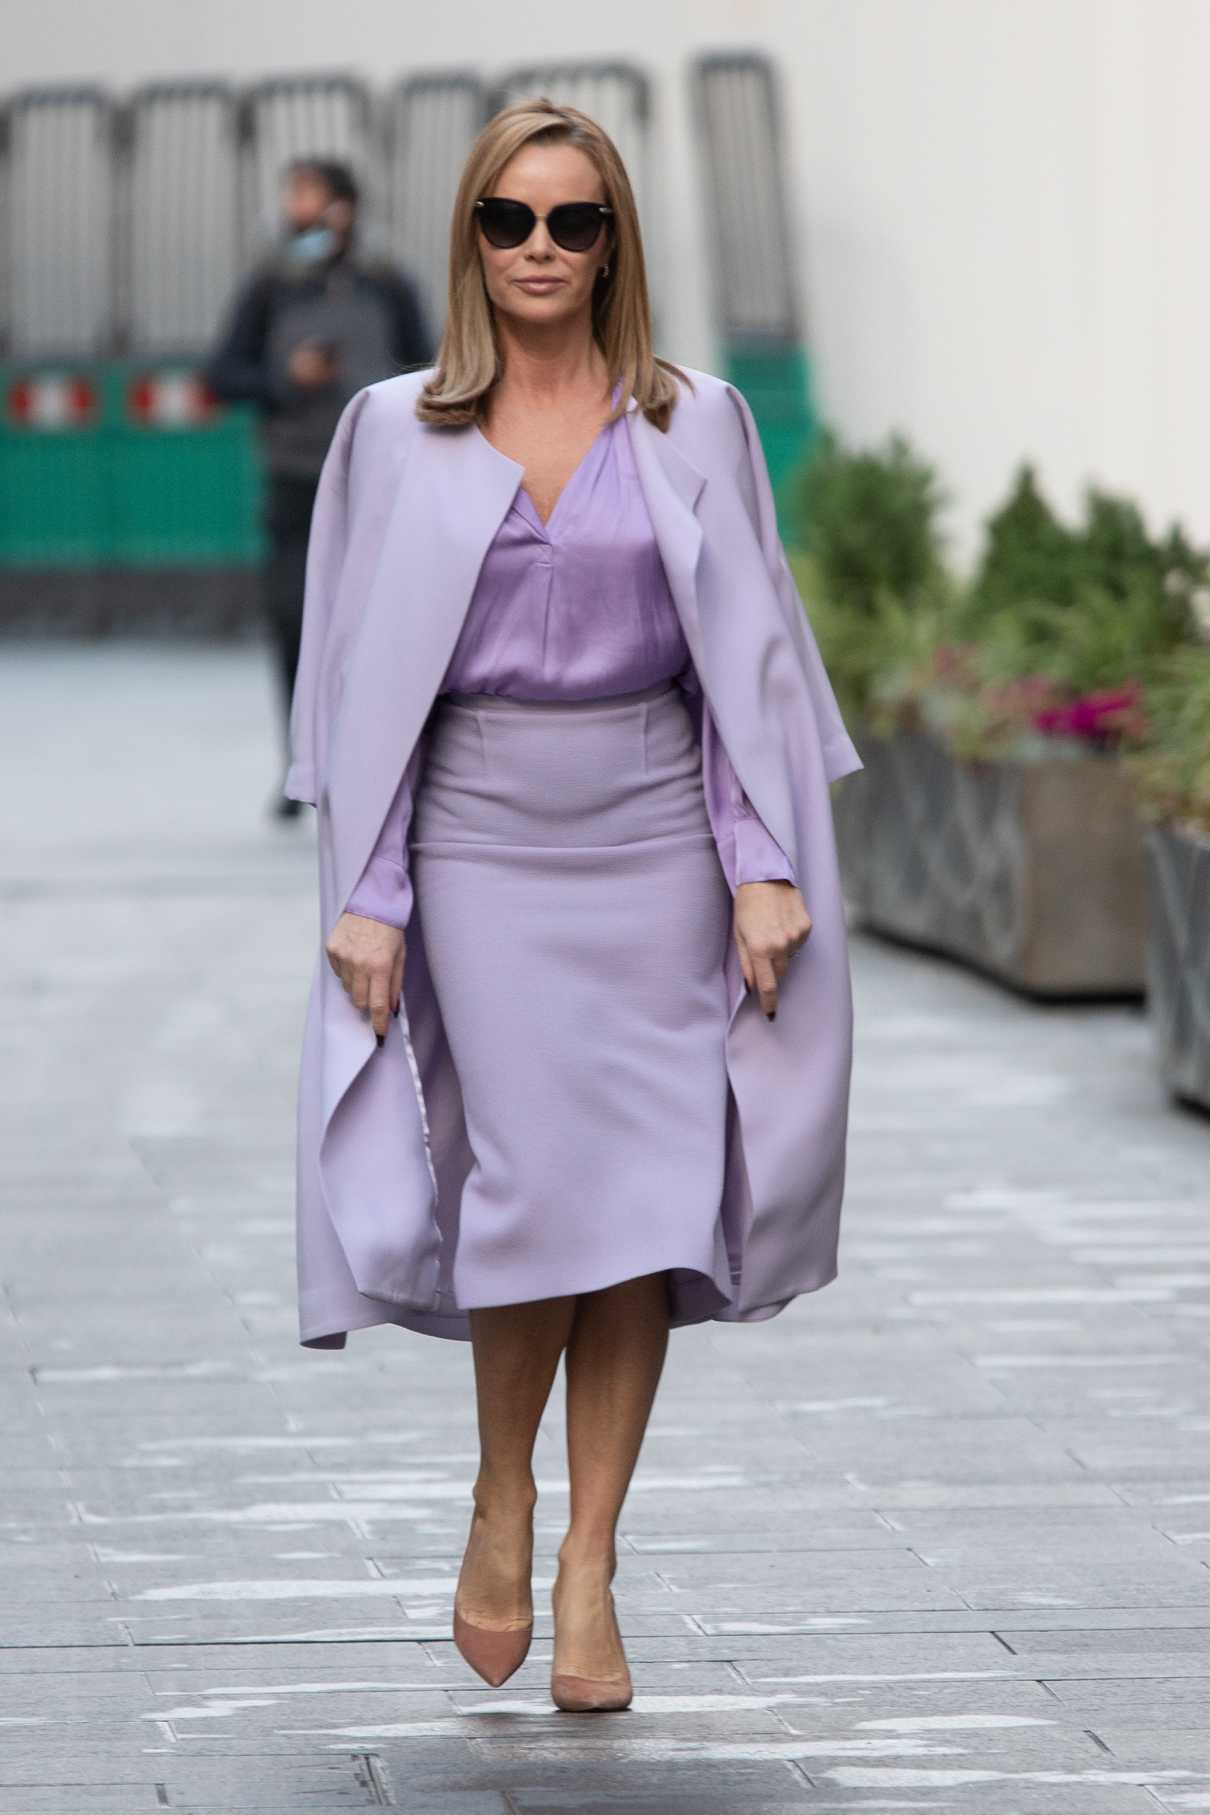 Amanda Holden in a Purple Outfit